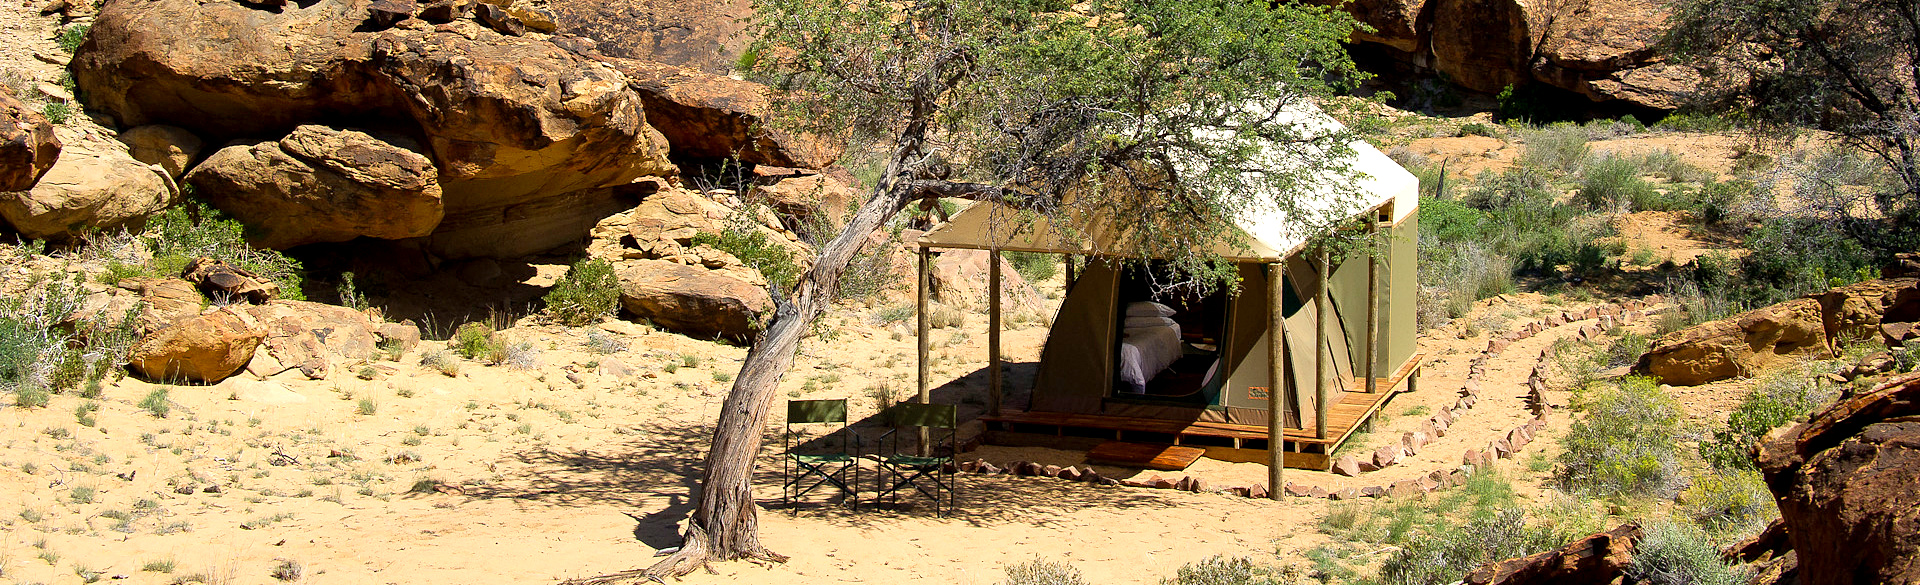 Damaraland Adventure Camp by Dana Allen courtesy Wilderness Safaris